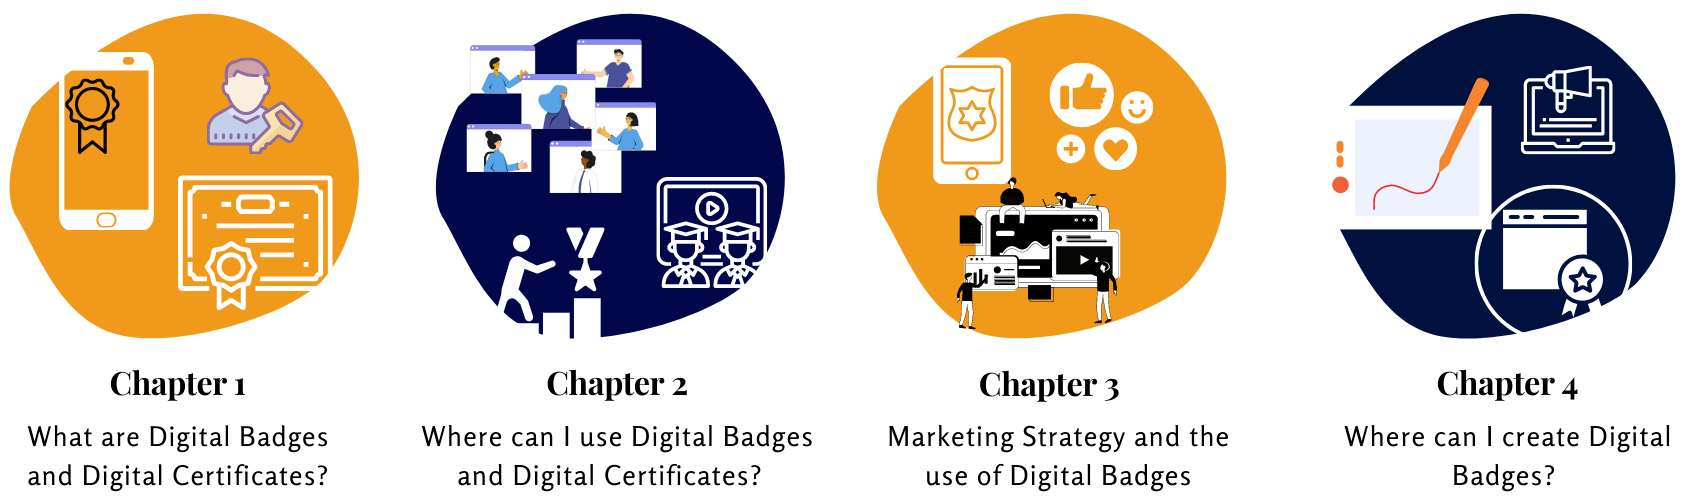 Table of Contents: digital badges and digital certificates